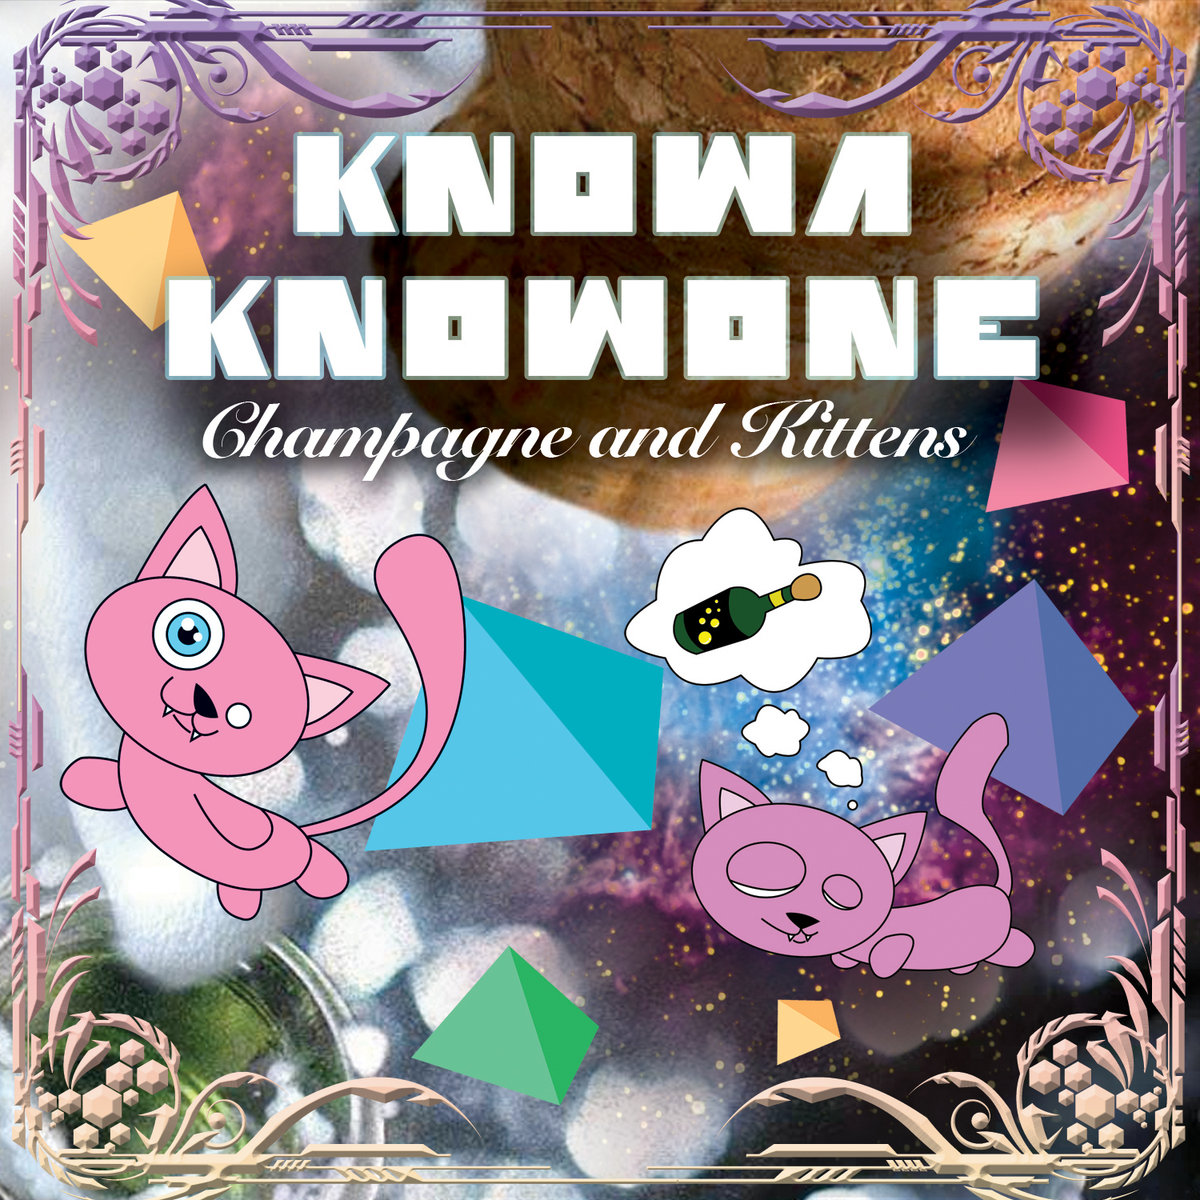 Knowa Knowone - Bust (Rook Remix) @ 'Champagne and Kittens' album (bass, electronic)